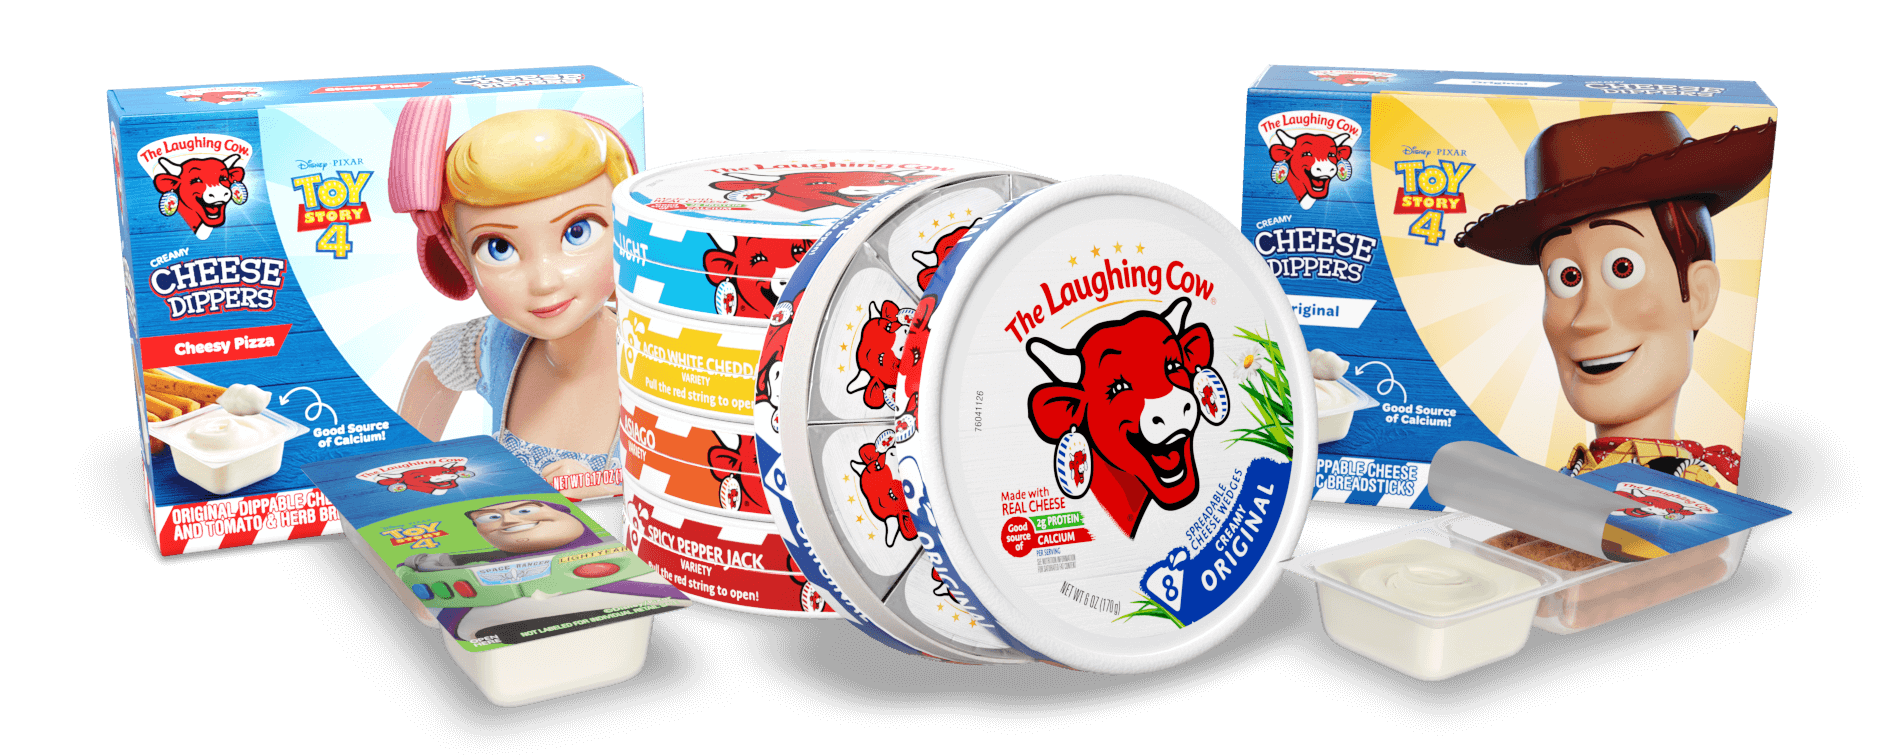 The Laughing Cow Product Locator